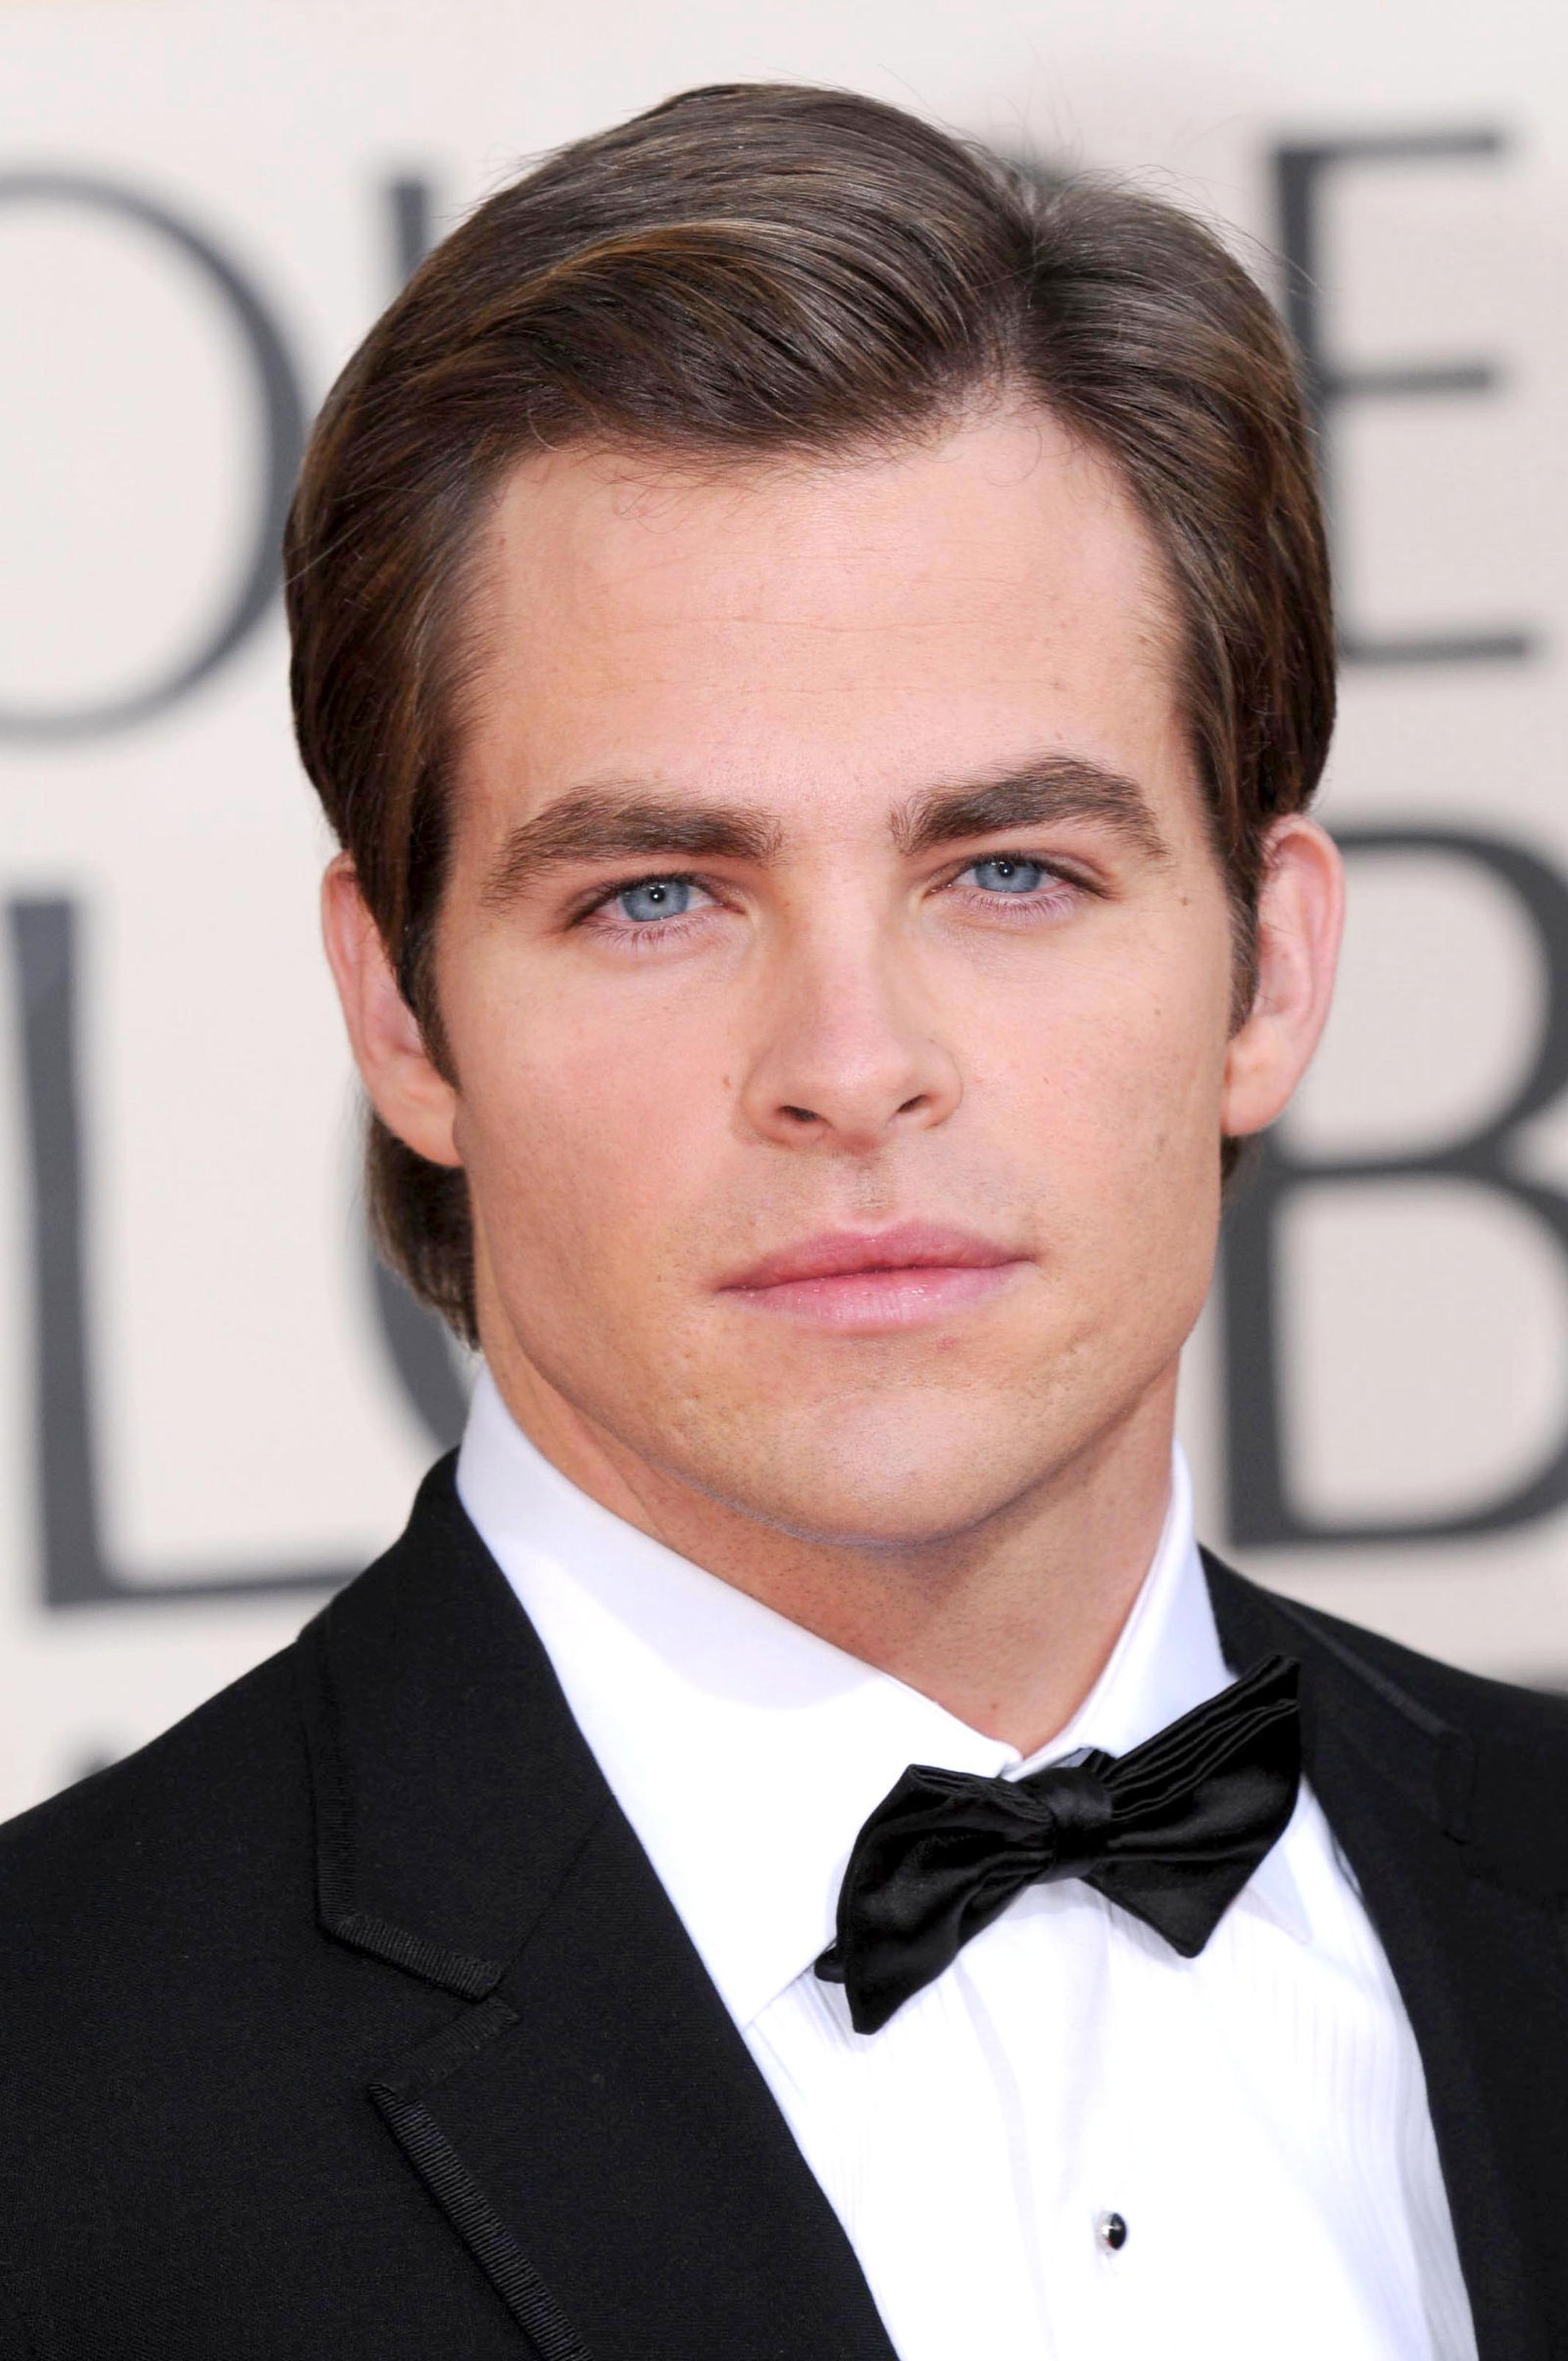 11 Exceptional Gentlemen Hairstyles How To Get Amp Style Tips